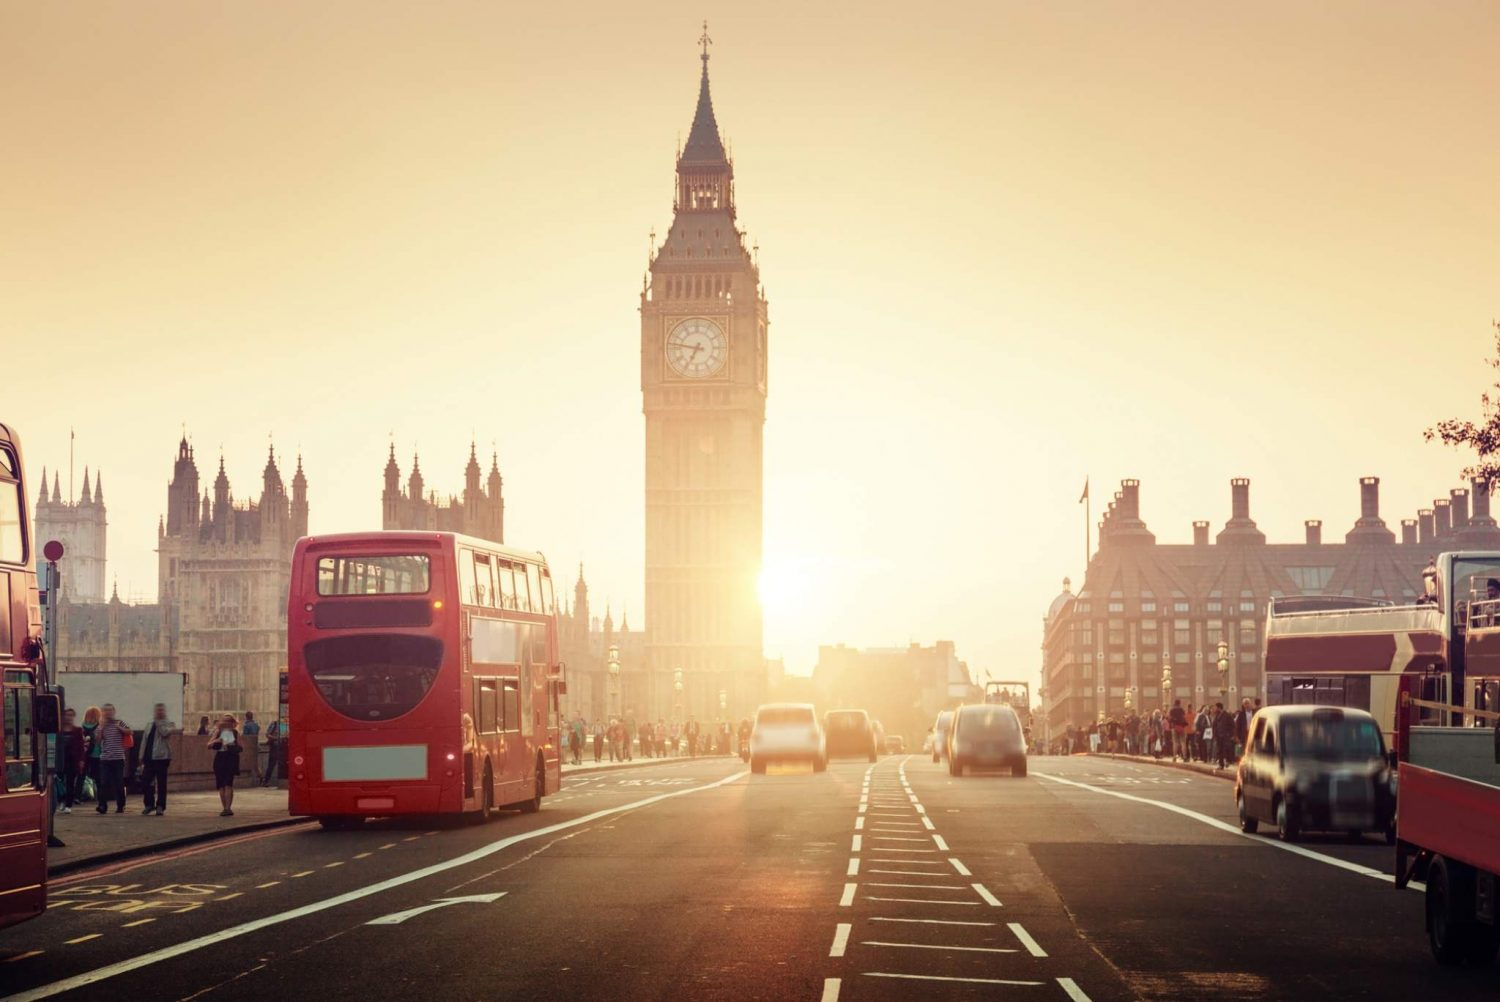 Westminster Bridge in London during sunset with Big Ben and a red bus shining bright